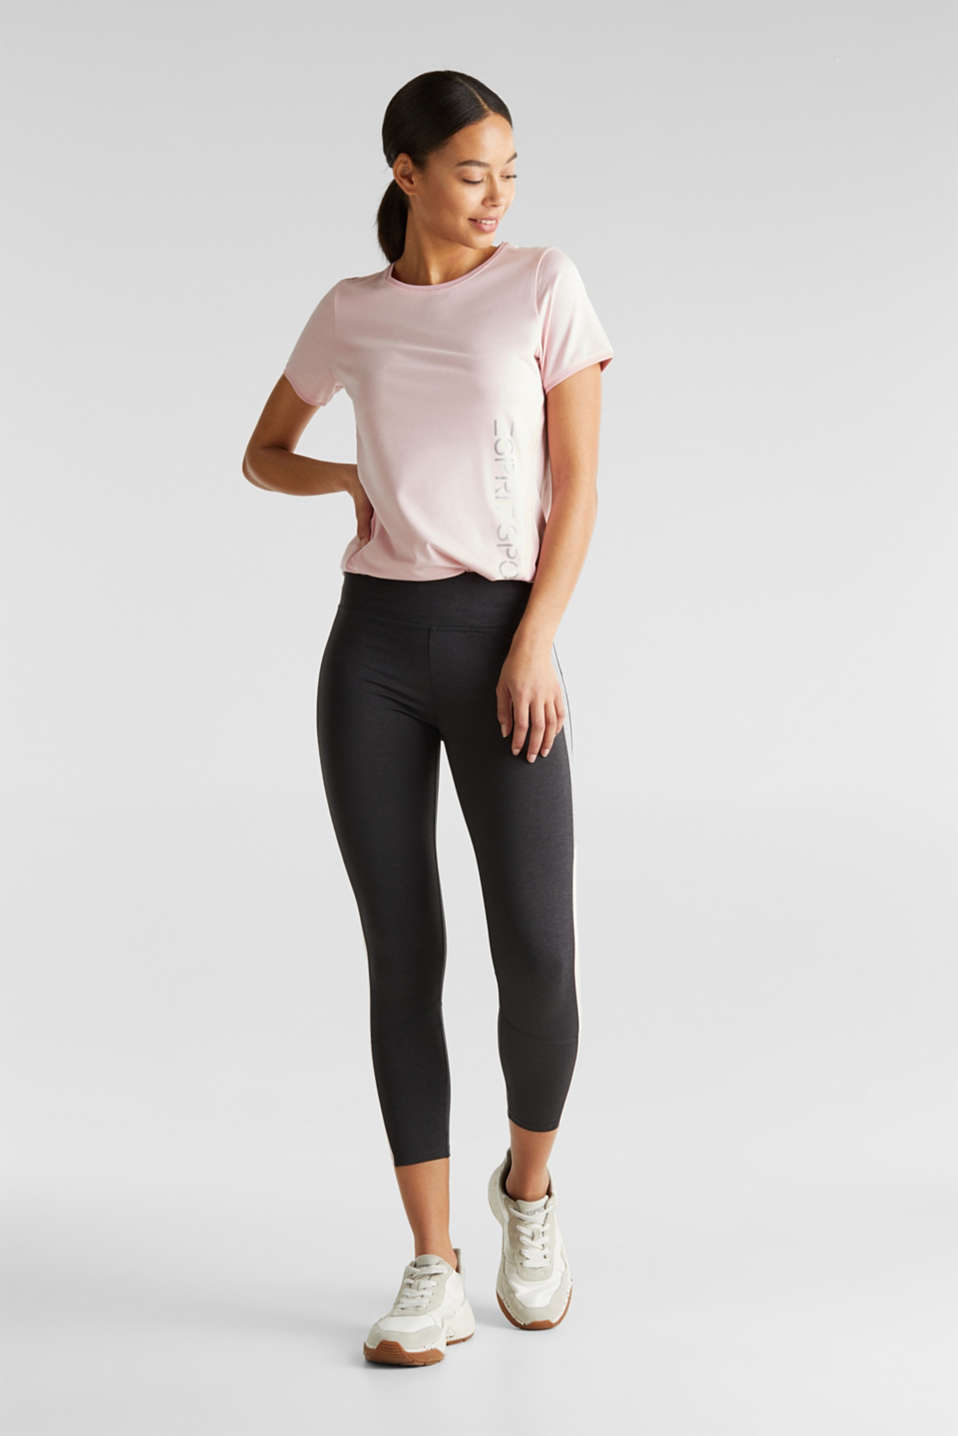 Stretch top with colour block stripes, E-DRY, LIGHT PINK 2, detail image number 1